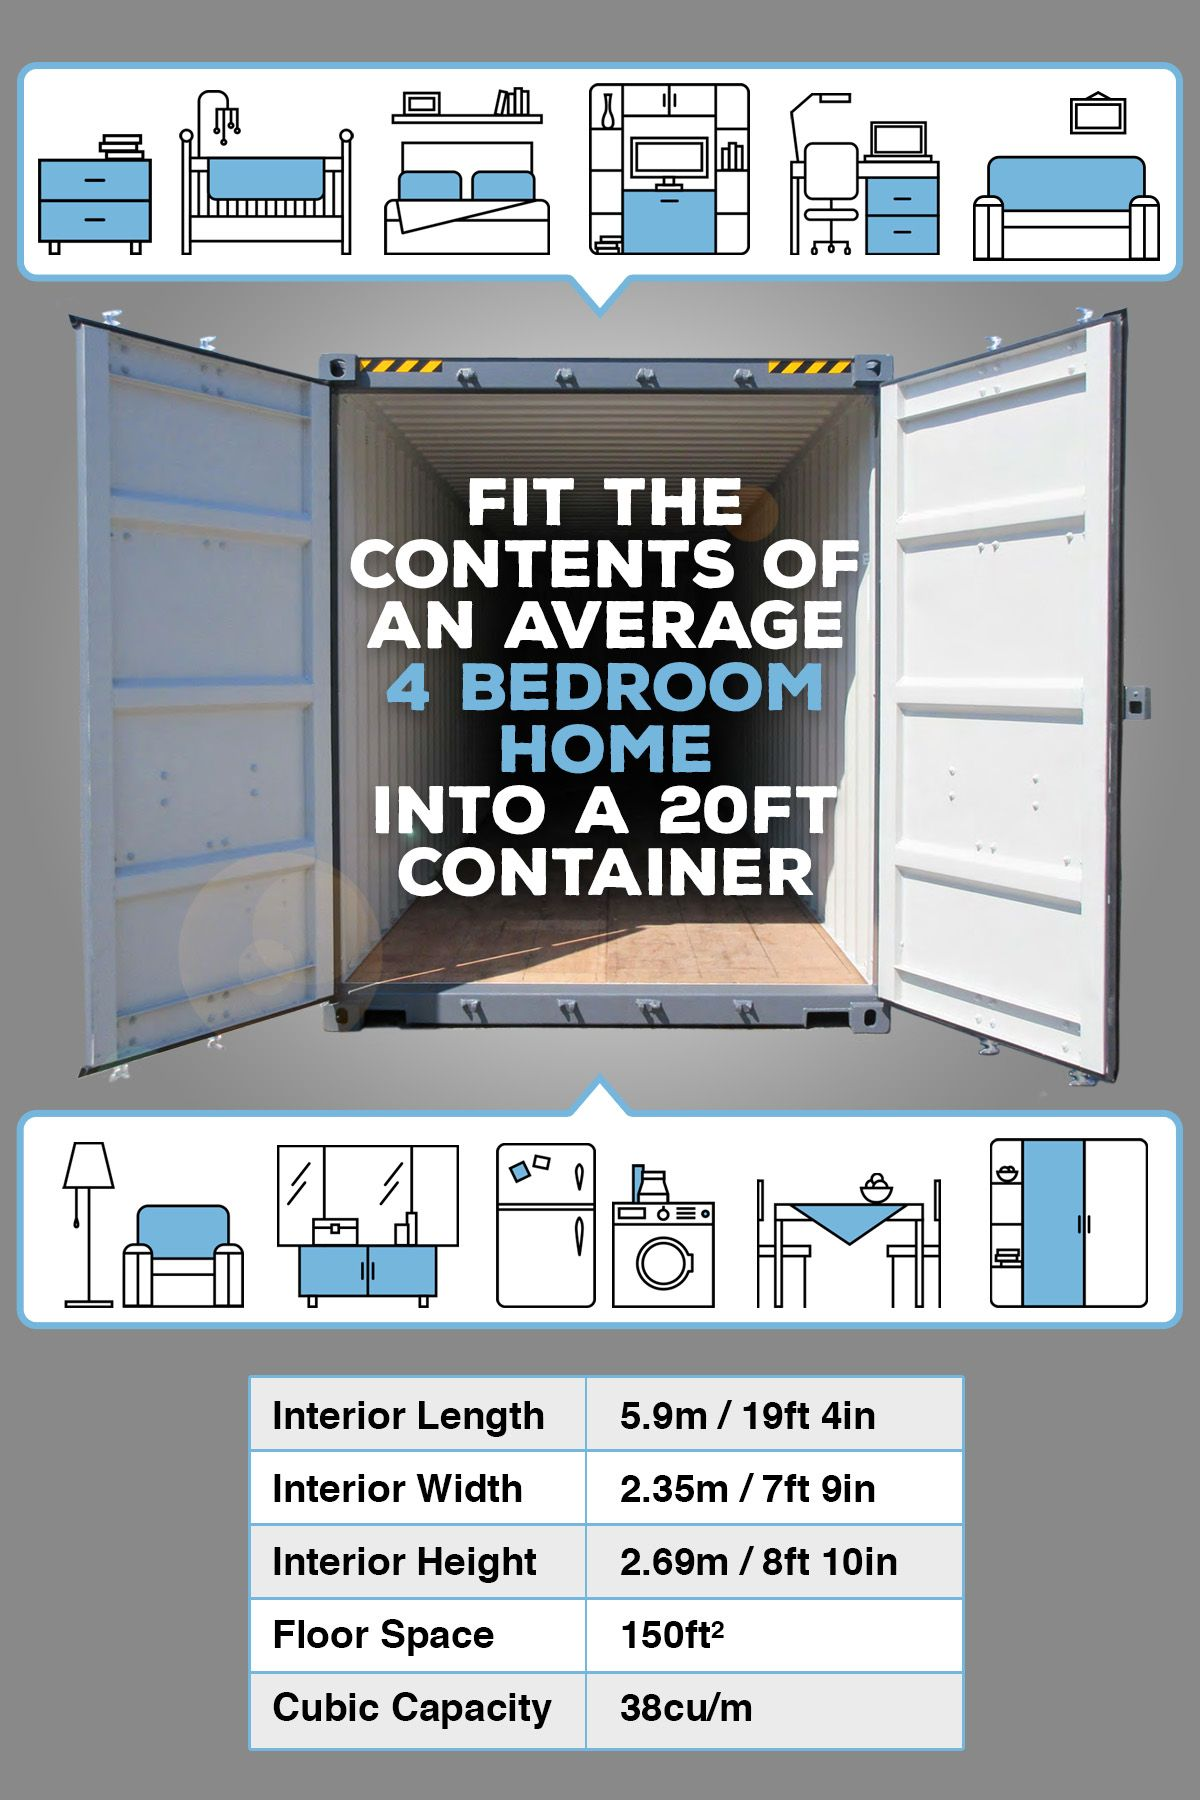 How much w ill fit into a 20ft high cube shipping container